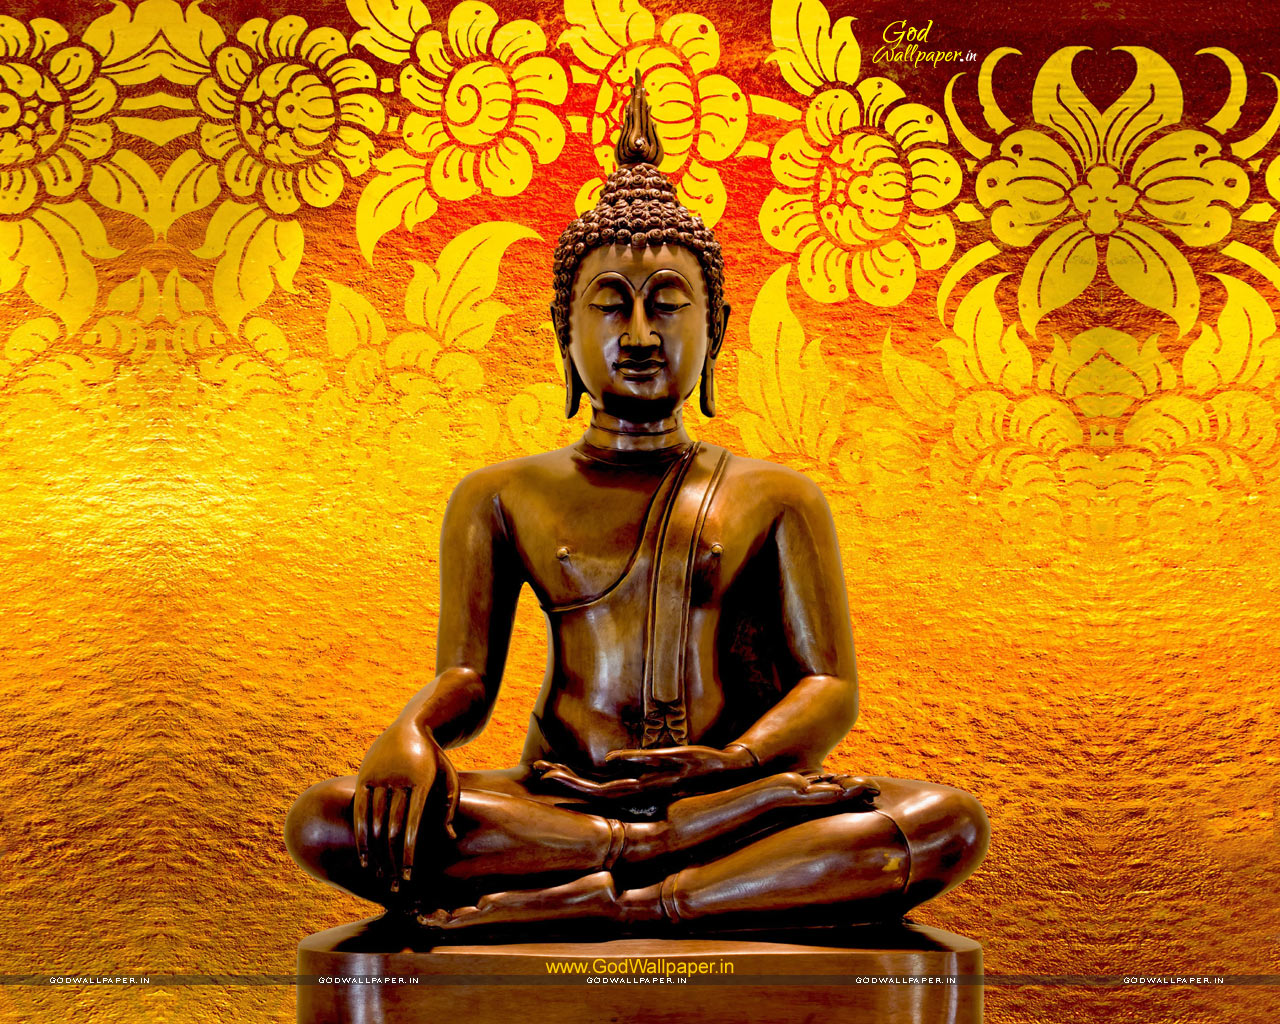 Download Lord Buddha Images Buddha Wallpaper High Resolution Download